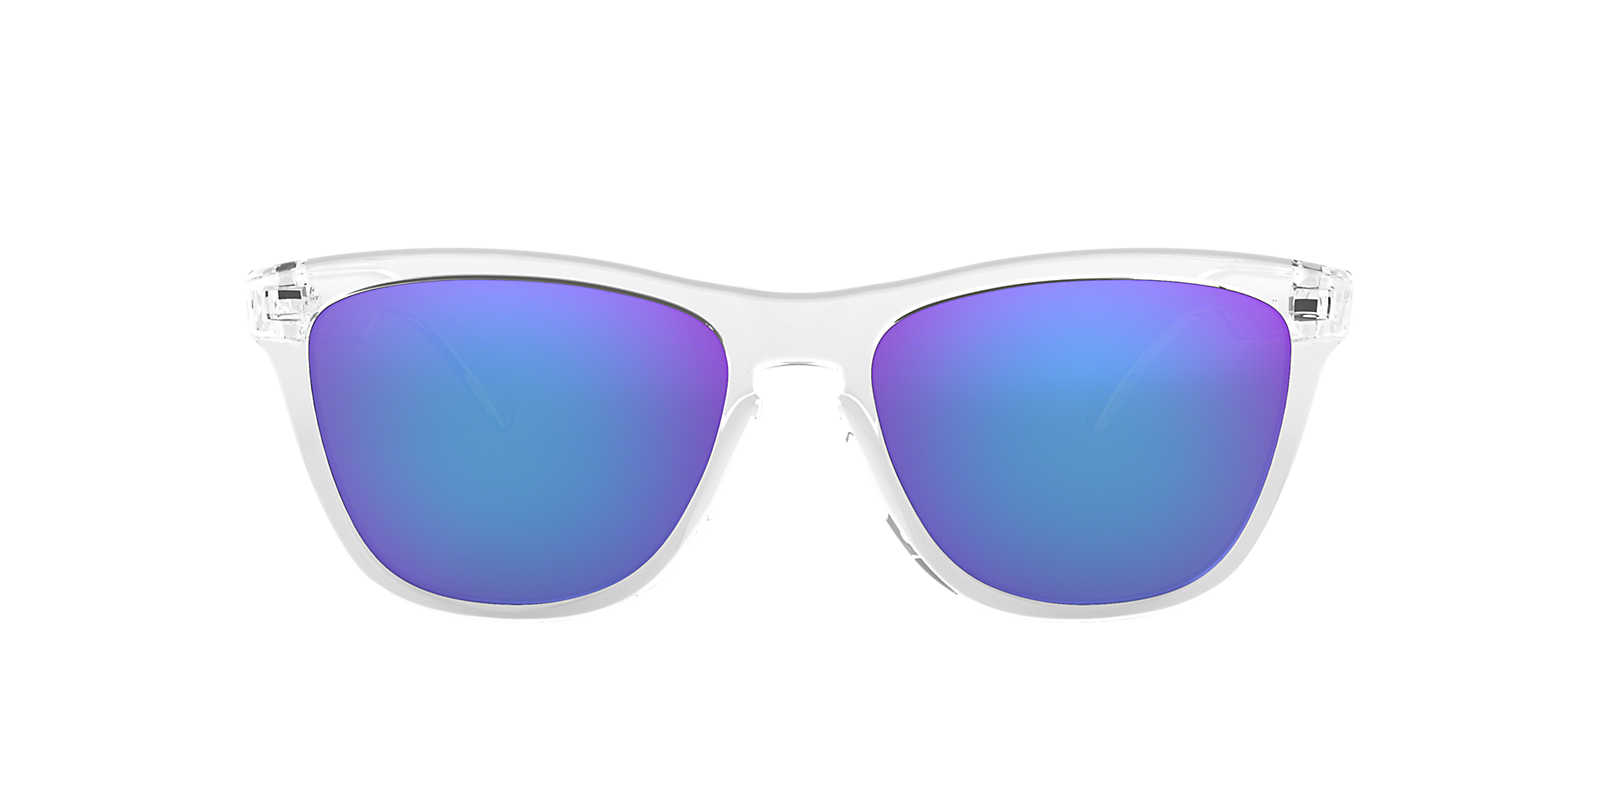 osevm Oakley Sunglasses for Women | Sunglass Hut